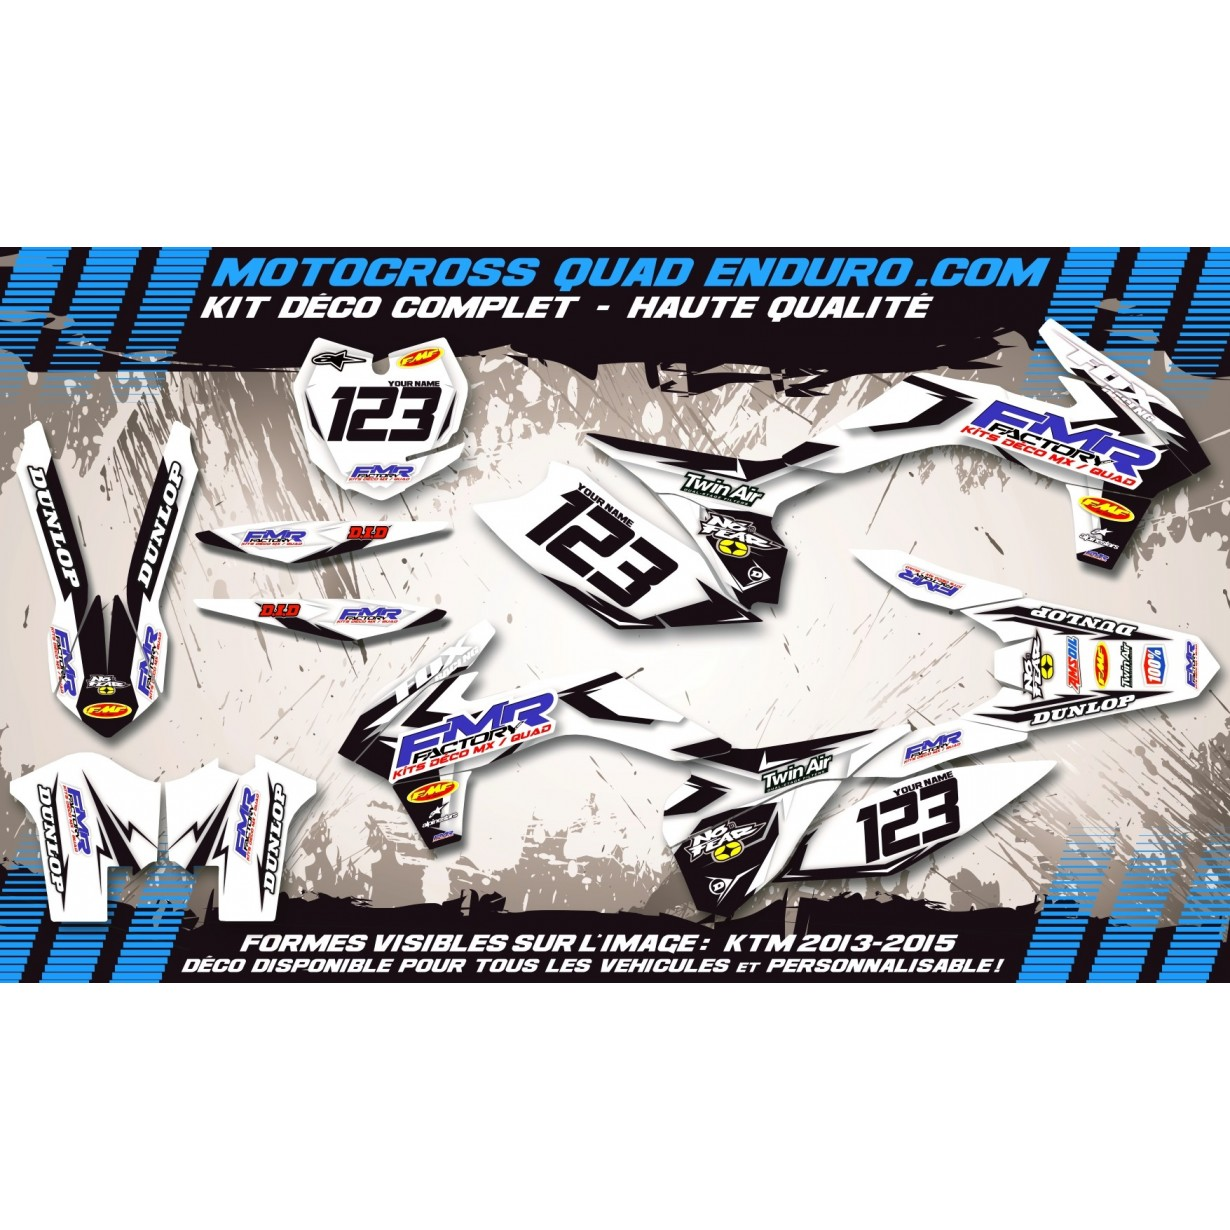 KIT DÉCO Perso 125-250 YZ UFO LOOK 4T 02-14 Fmr factory WT Edition MA13WT